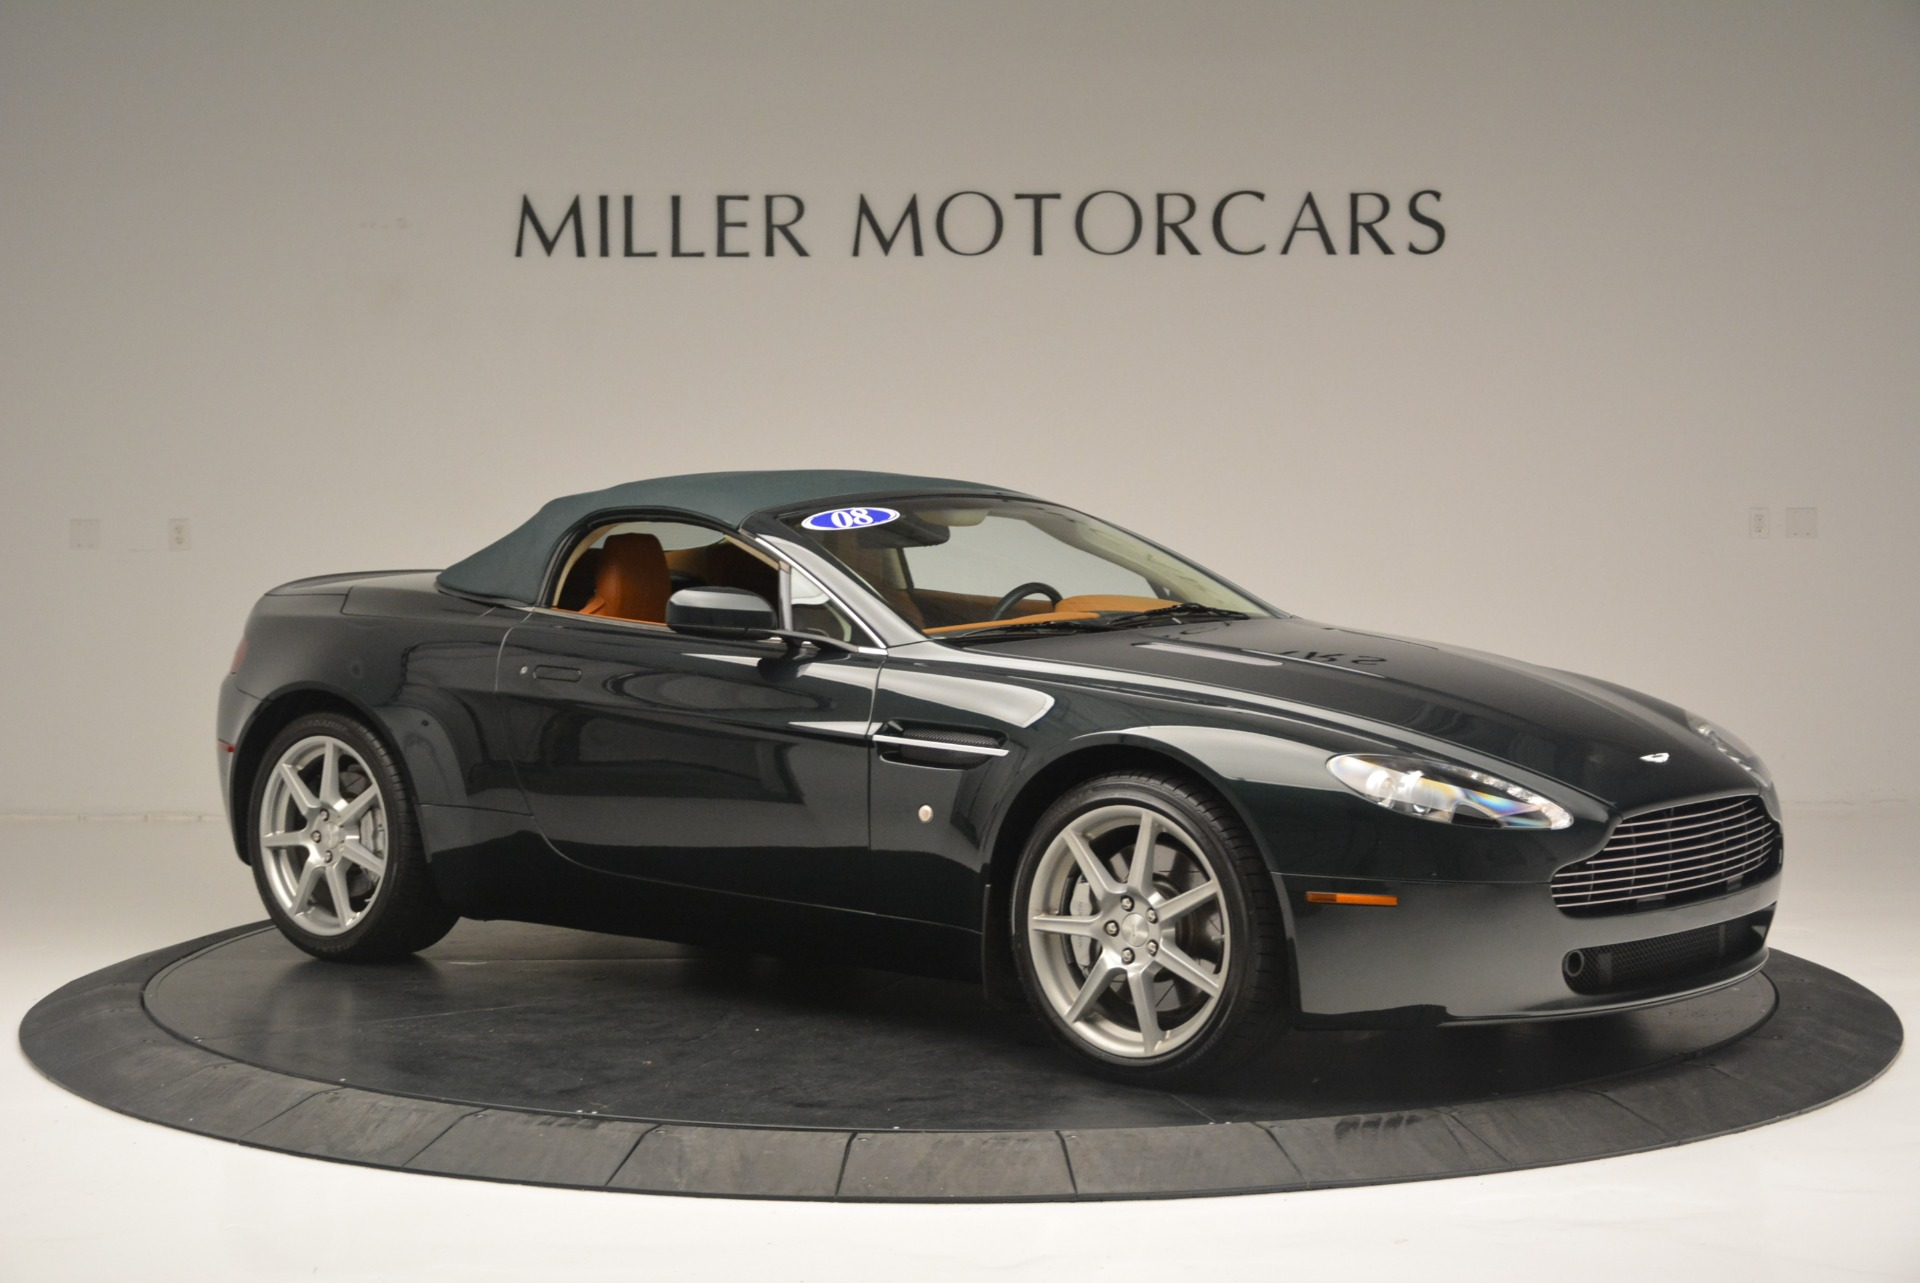 Used 2008 Aston Martin V8 Vantage Roadster For Sale In Westport, CT 2422_p13